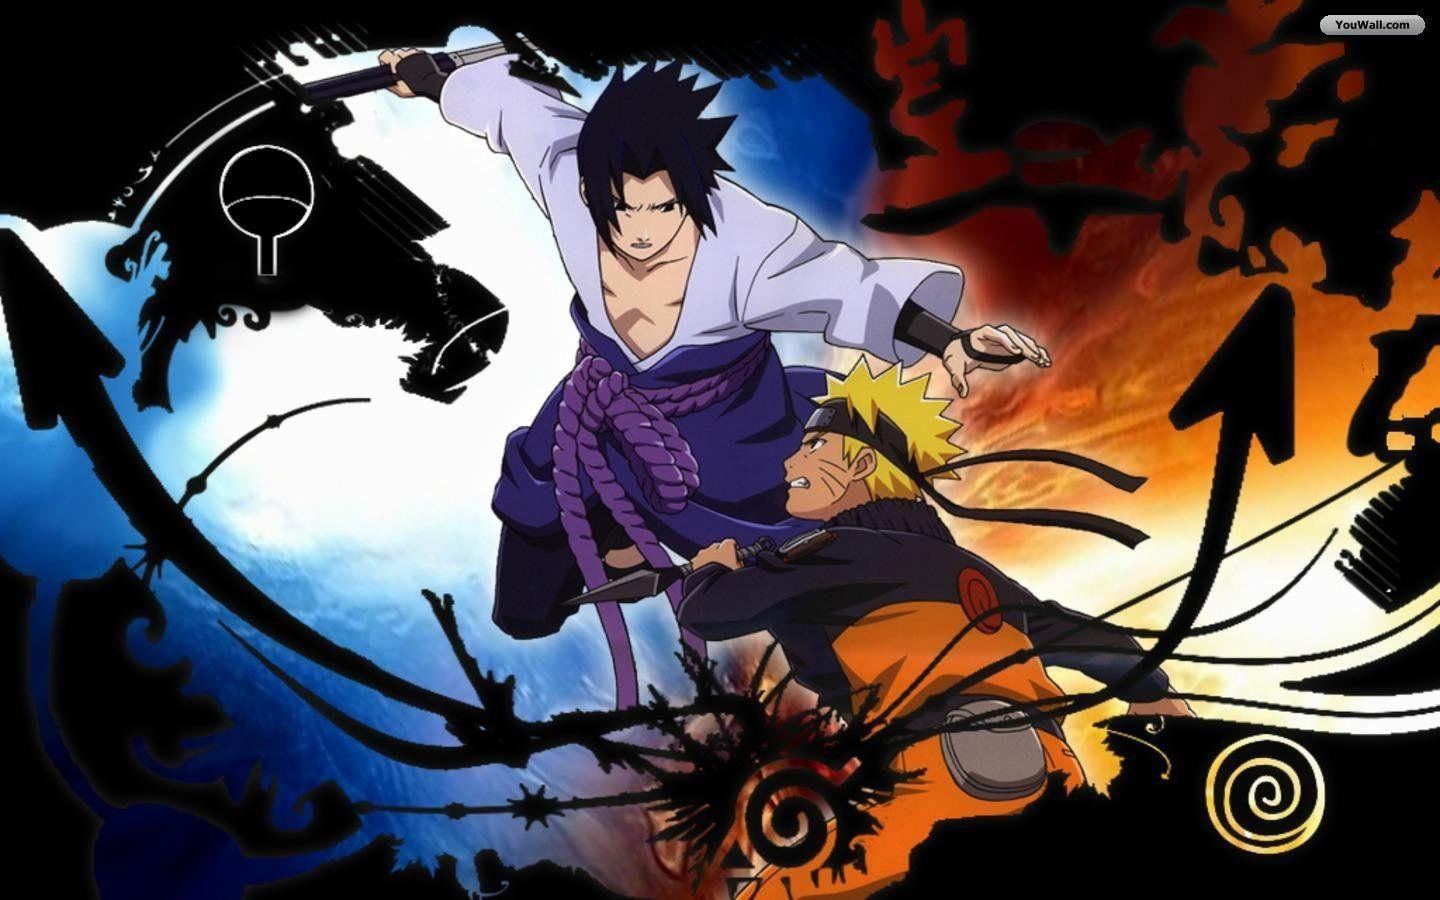 Naruto Vs Sasuke Wallpapers Top Free Naruto Vs Sasuke Backgrounds Wallpaperaccess